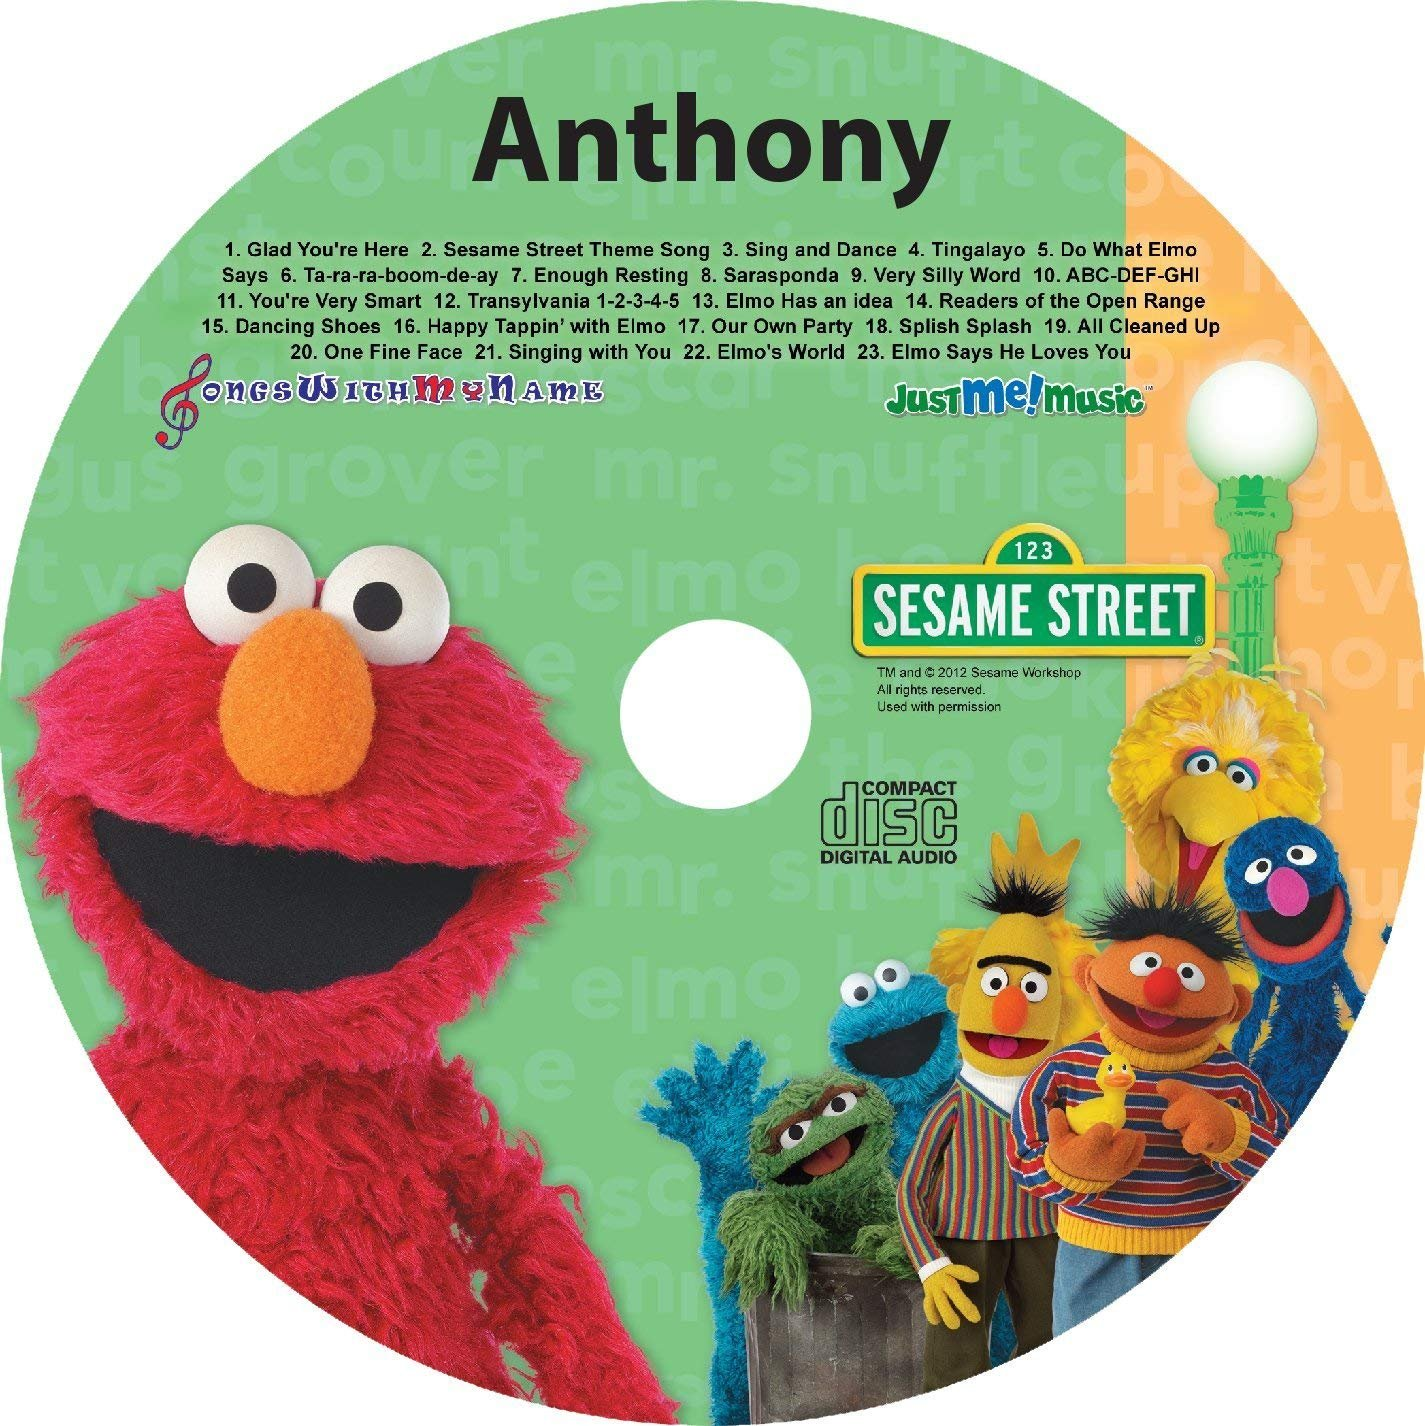 Gombita Enterprises Children Name Personalized CD or MP3 Sing Along with Elmo and Friends Customize Now (CD Disk) by Gombita Enterprises